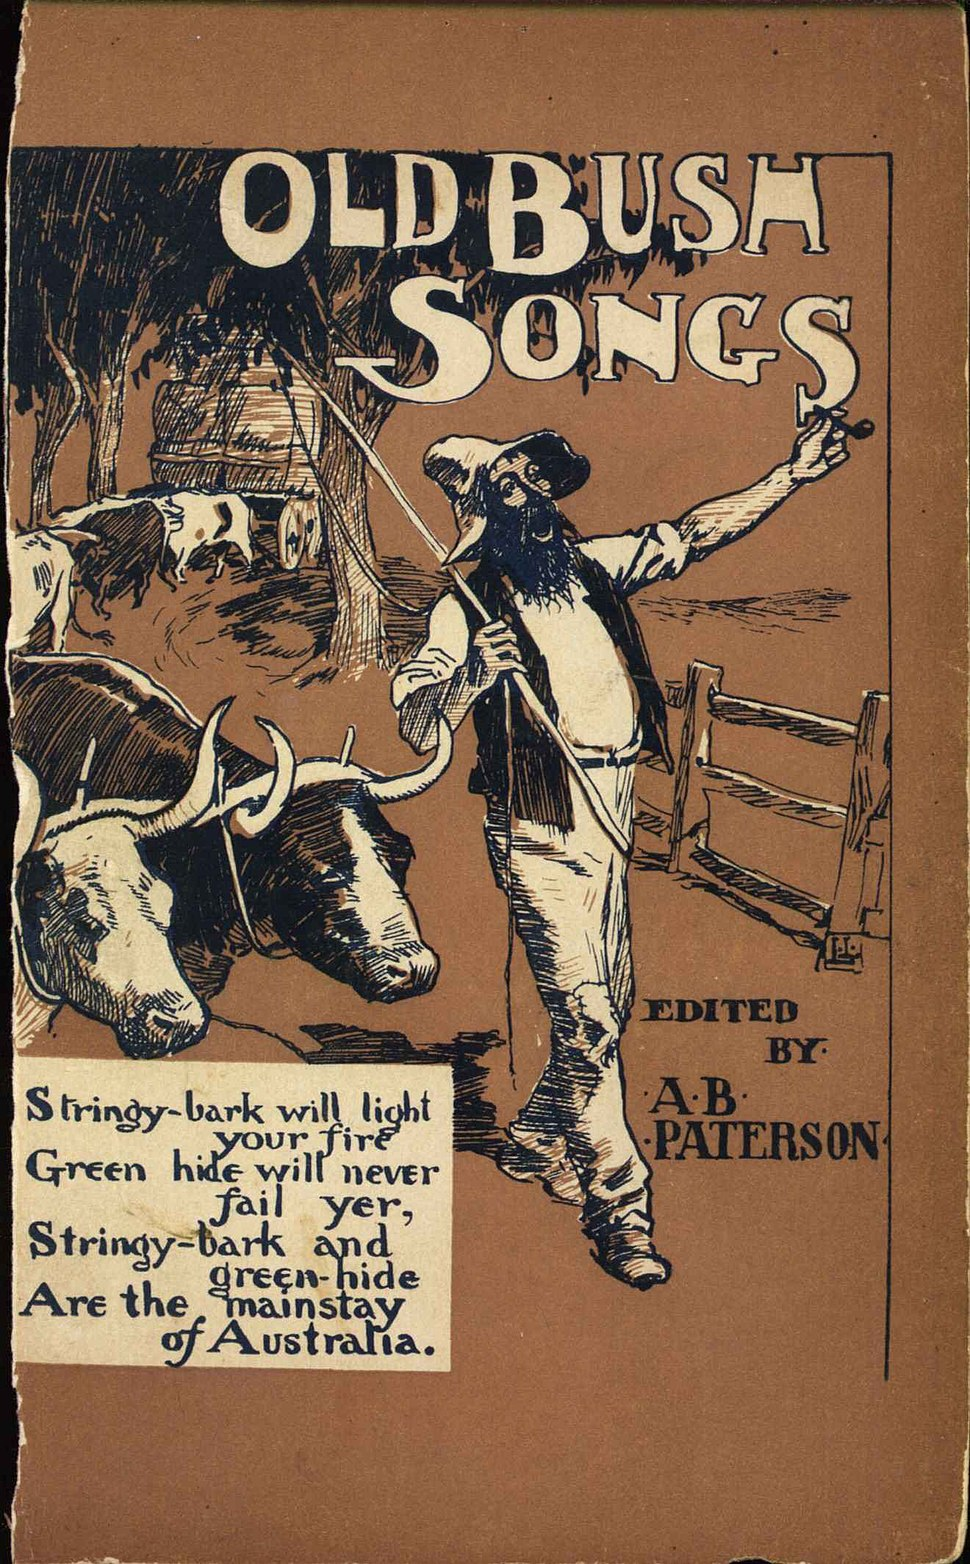 The Old Bush Songs by Banio Paterson